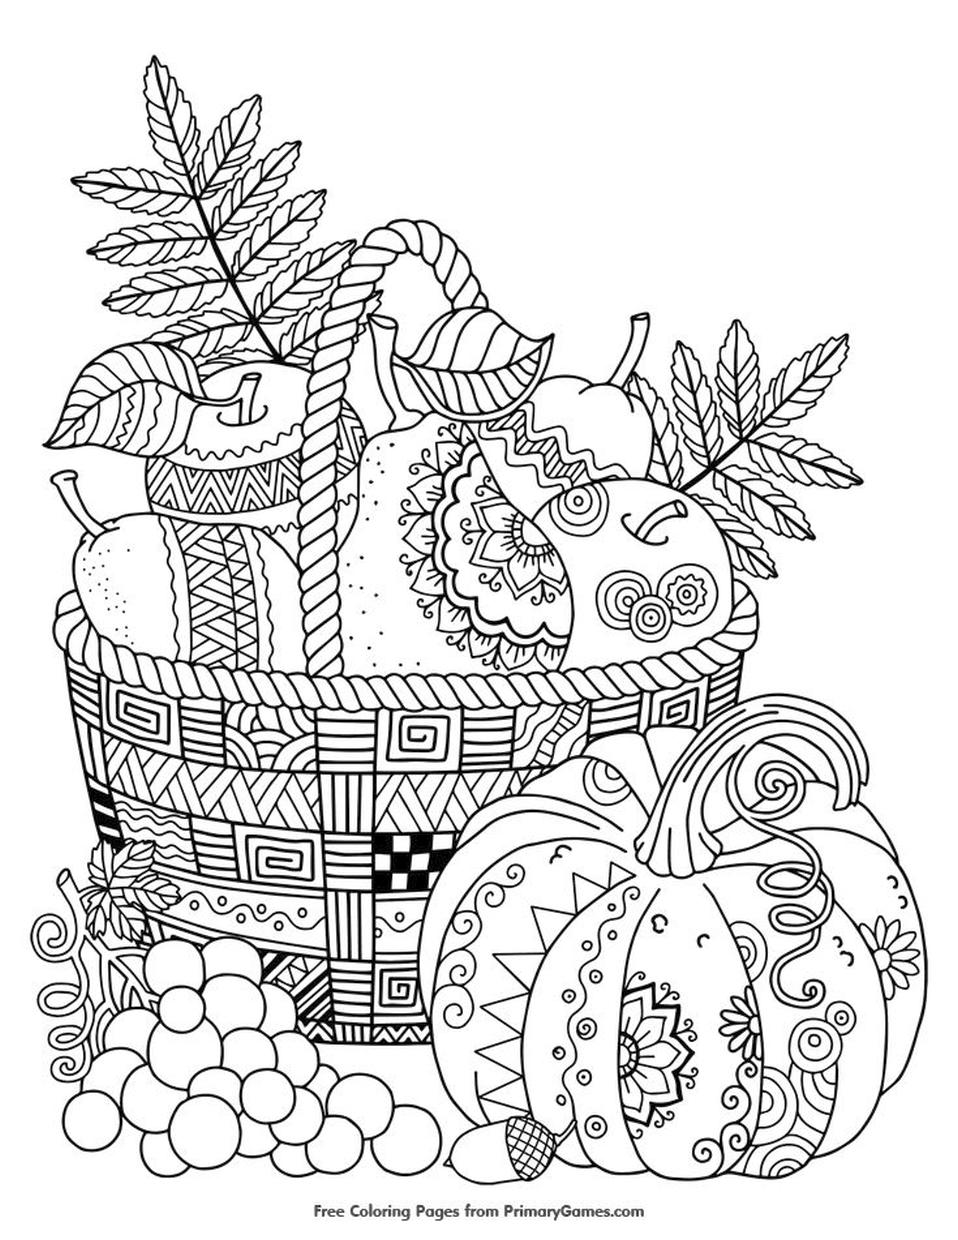 Thanksgiving Coloring Pages for Adult Free Printable A Basket of Fall Crops